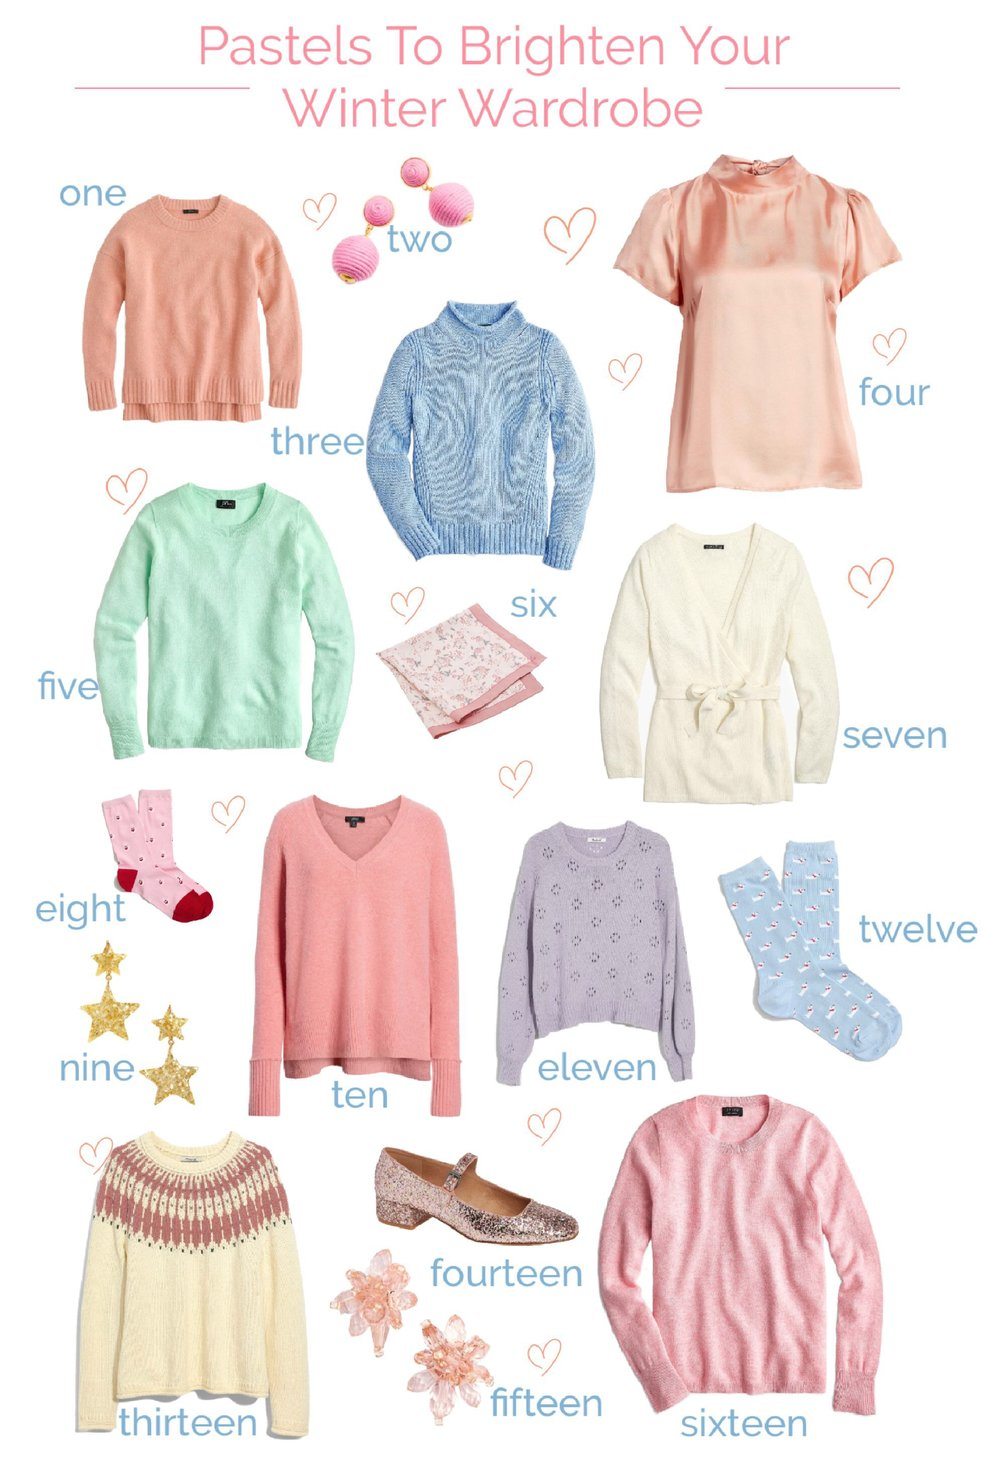 Pastels to brighten your winter wardrobe